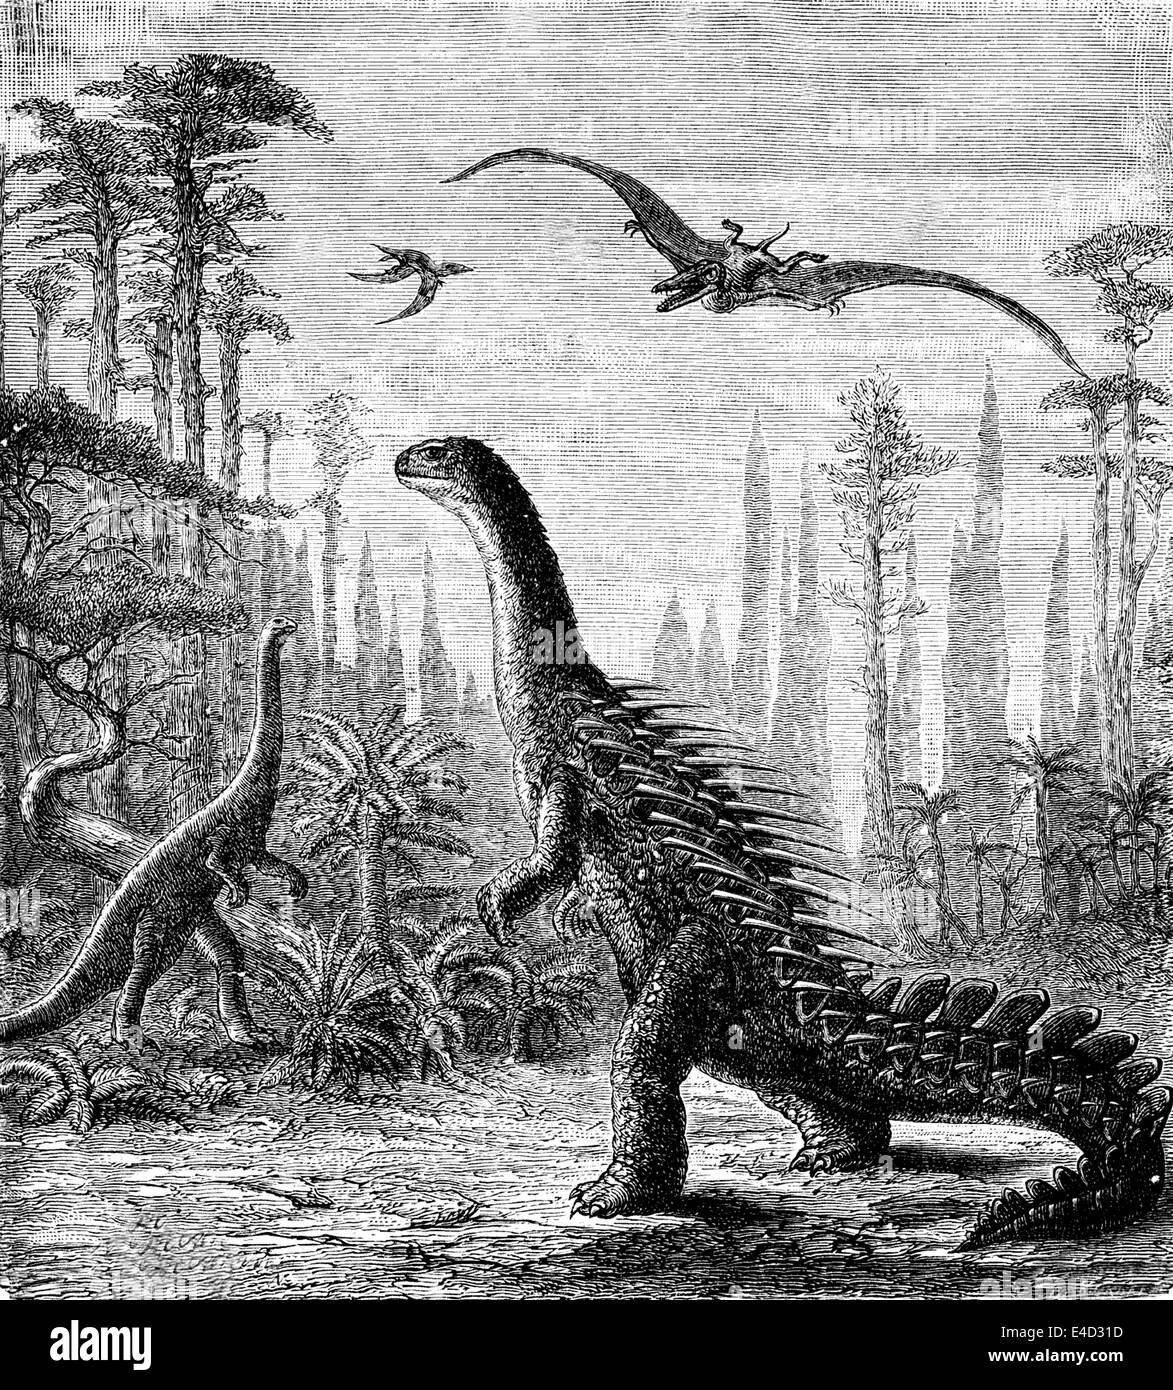 Prehistoric times, dinosaurs, historical illustration,1859 - Stock Image